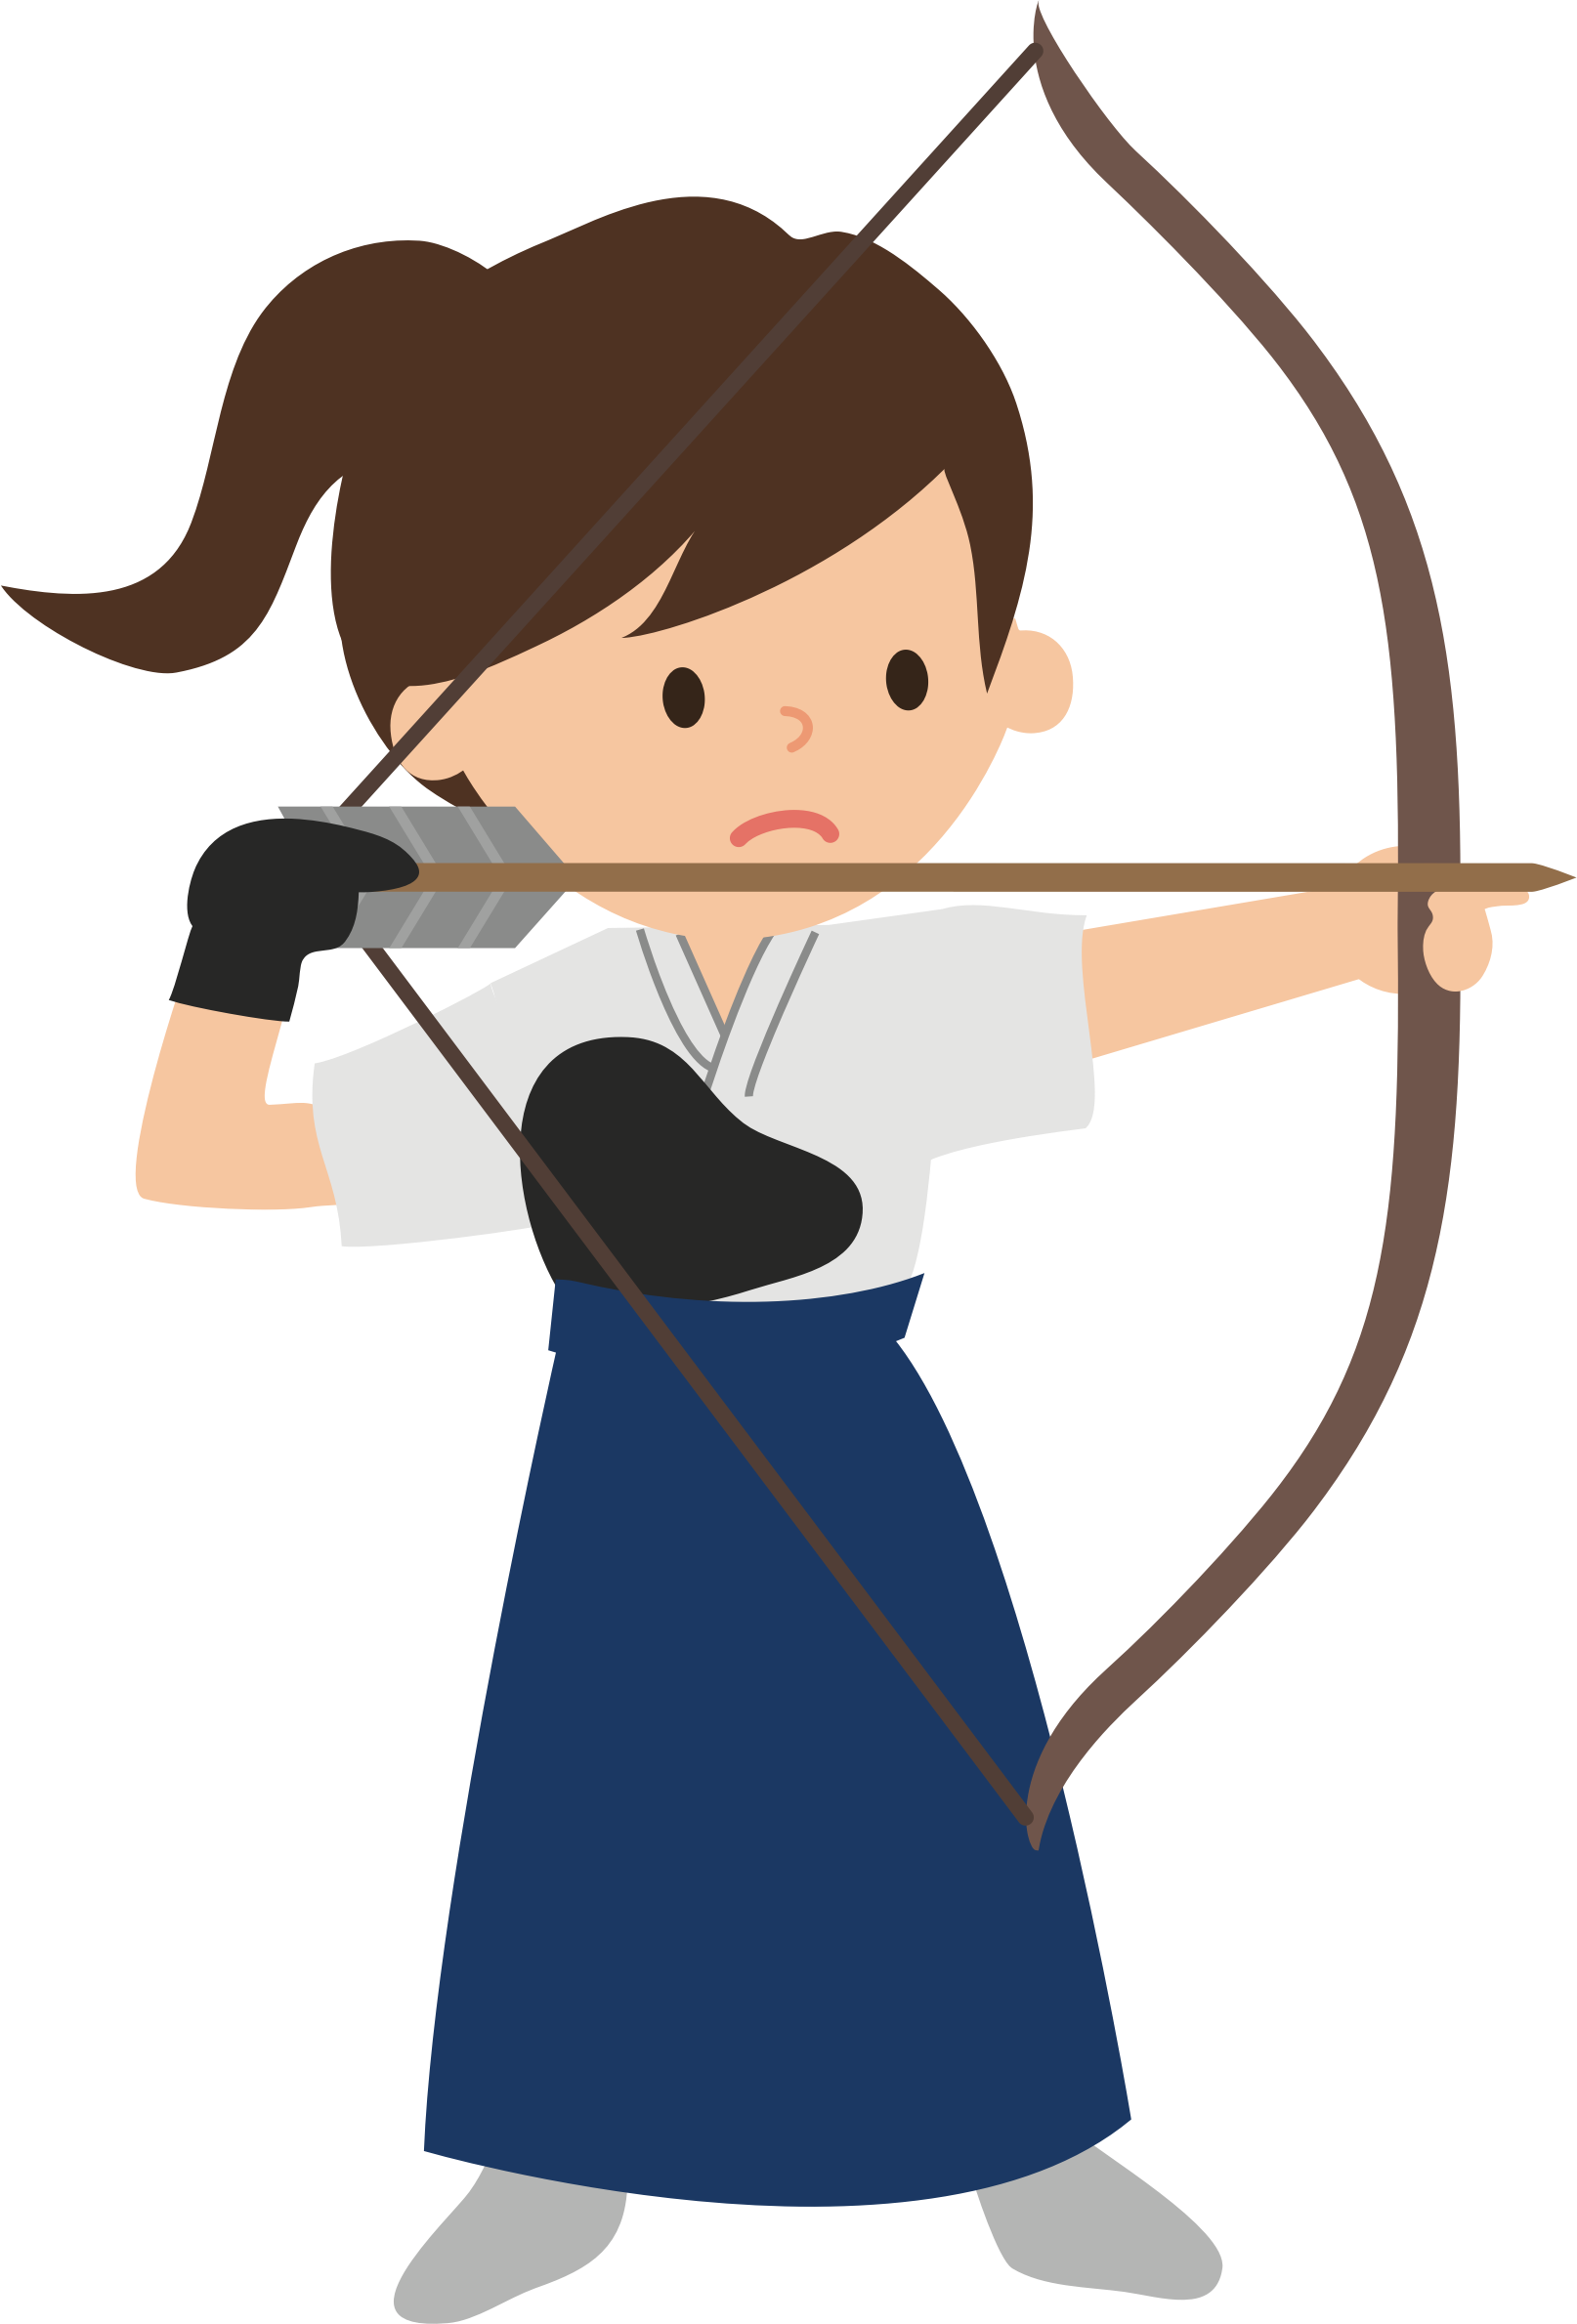 Archer clipart transparent. Female big image png